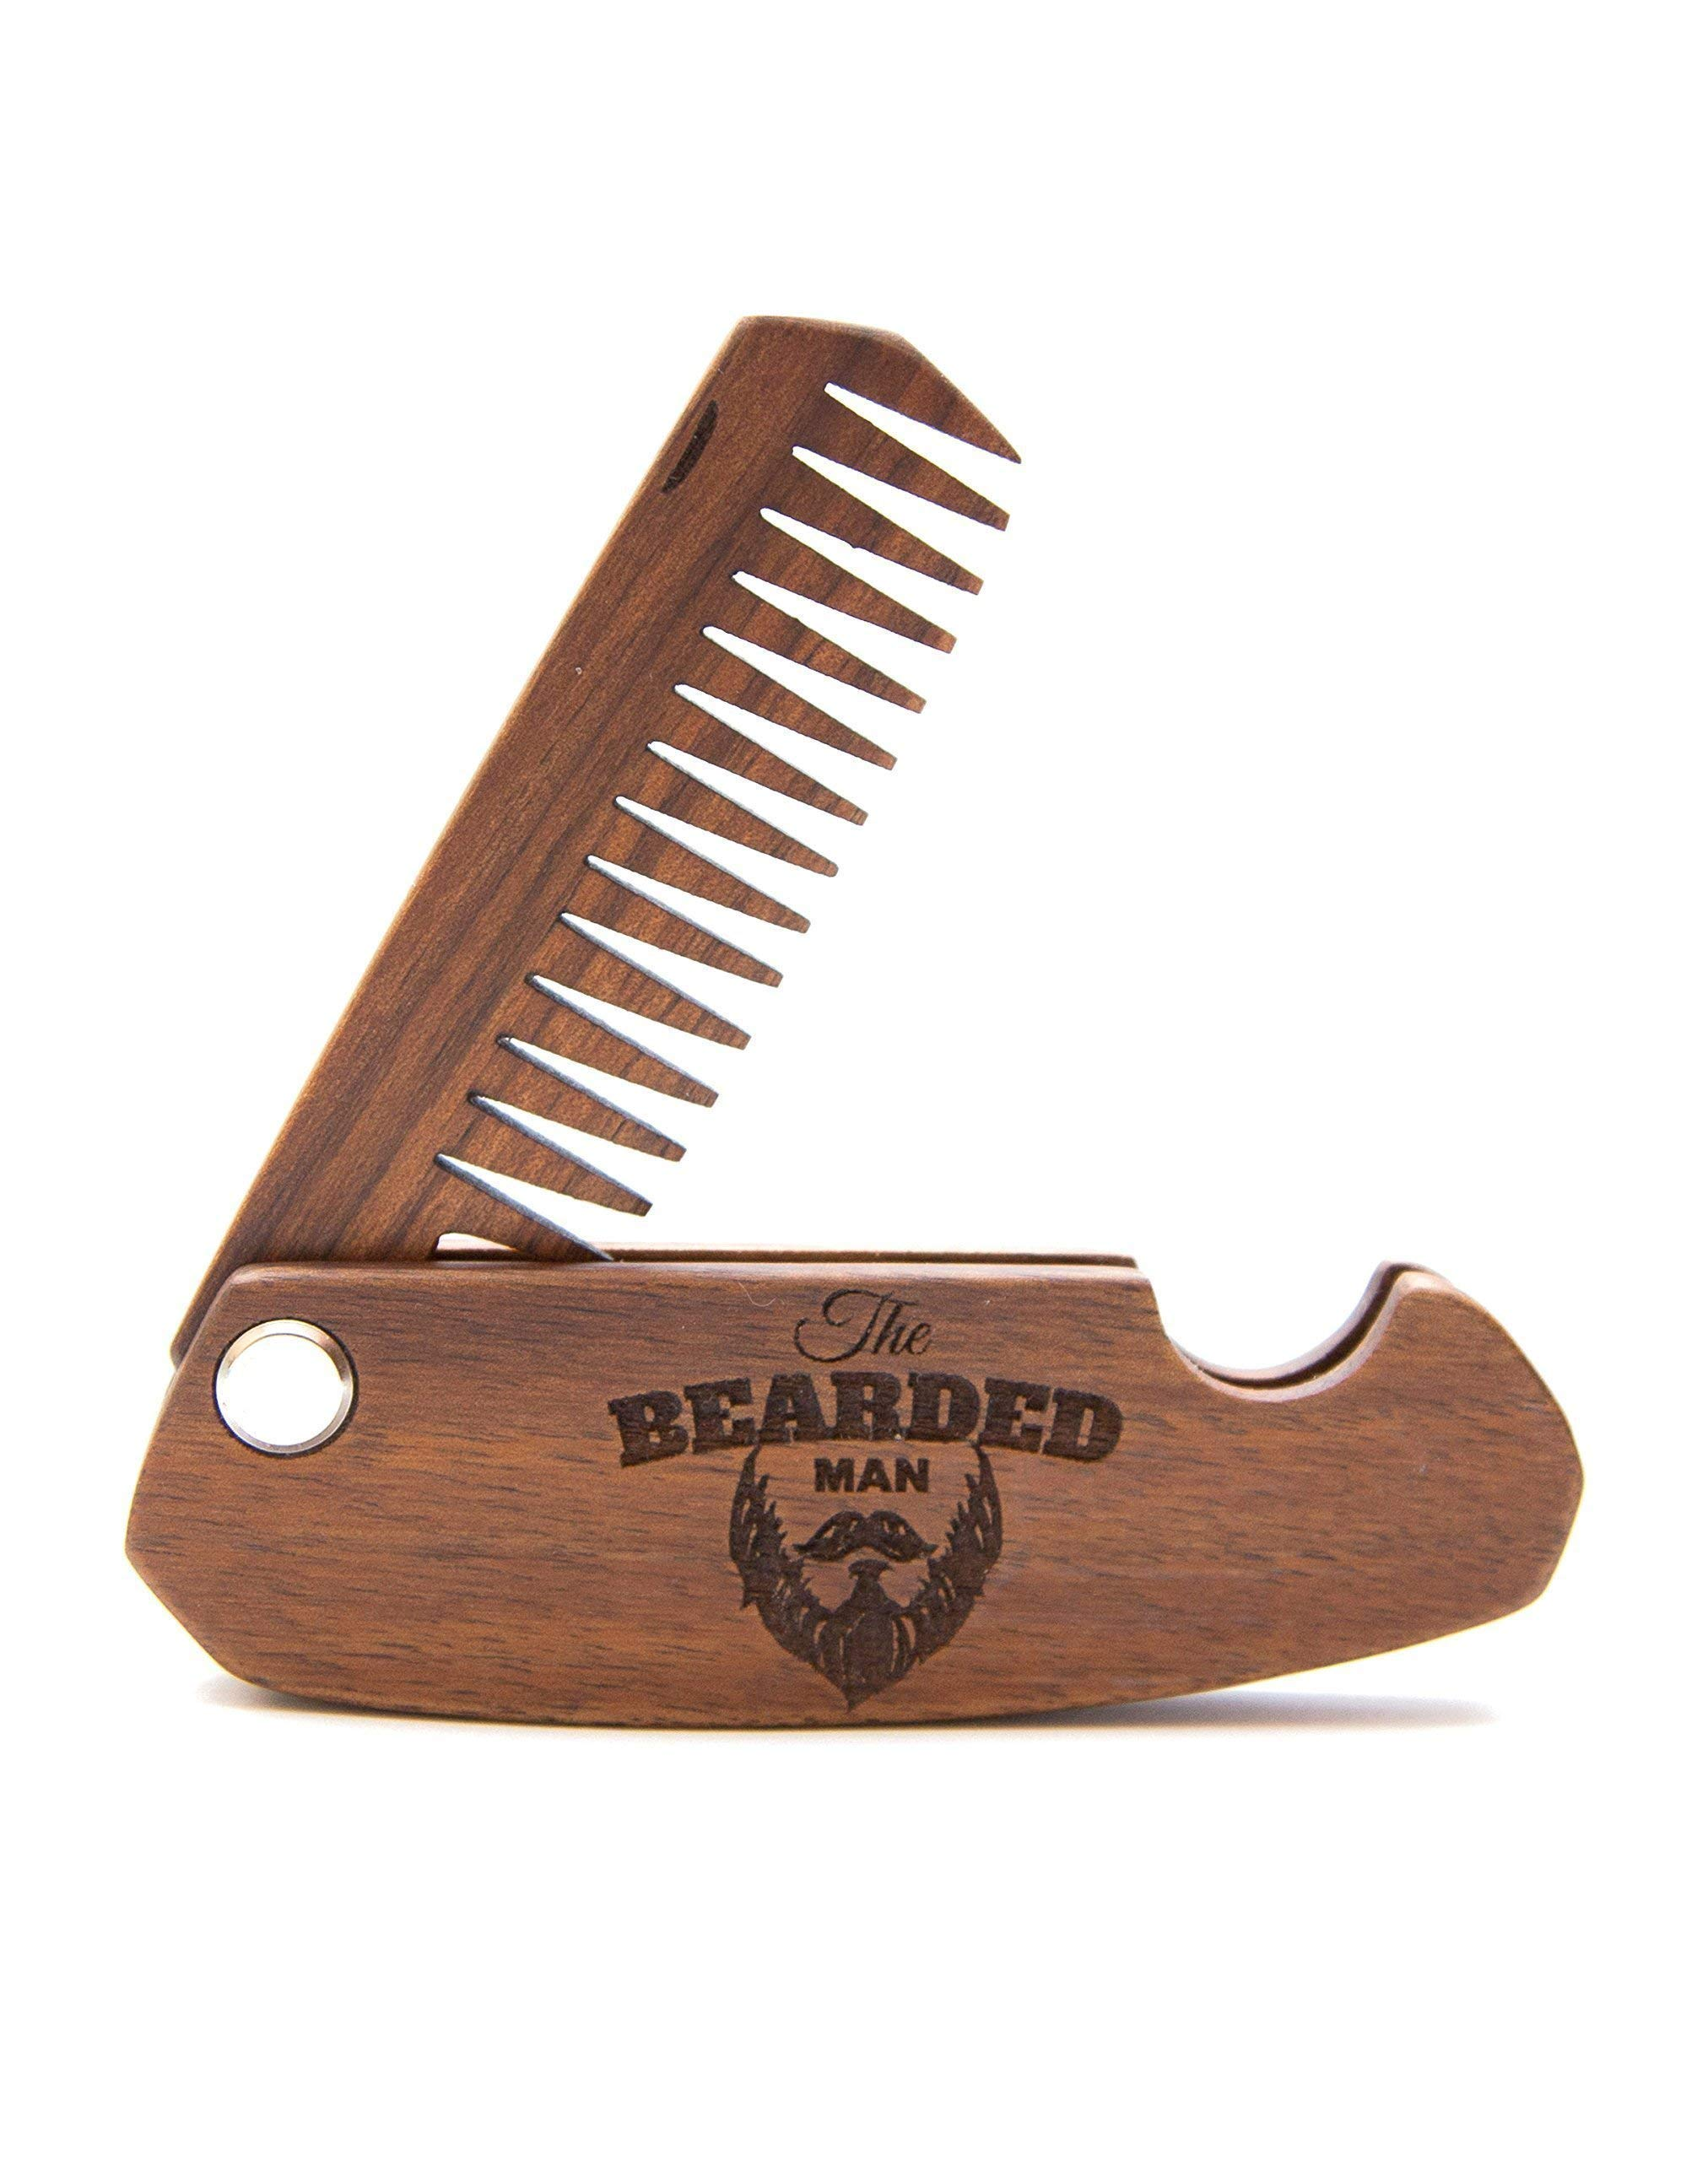 For Beard Folding Comb for Hair Mustache Engraved Covered With Oil-wax Bearded Man Gift Idea Weeding